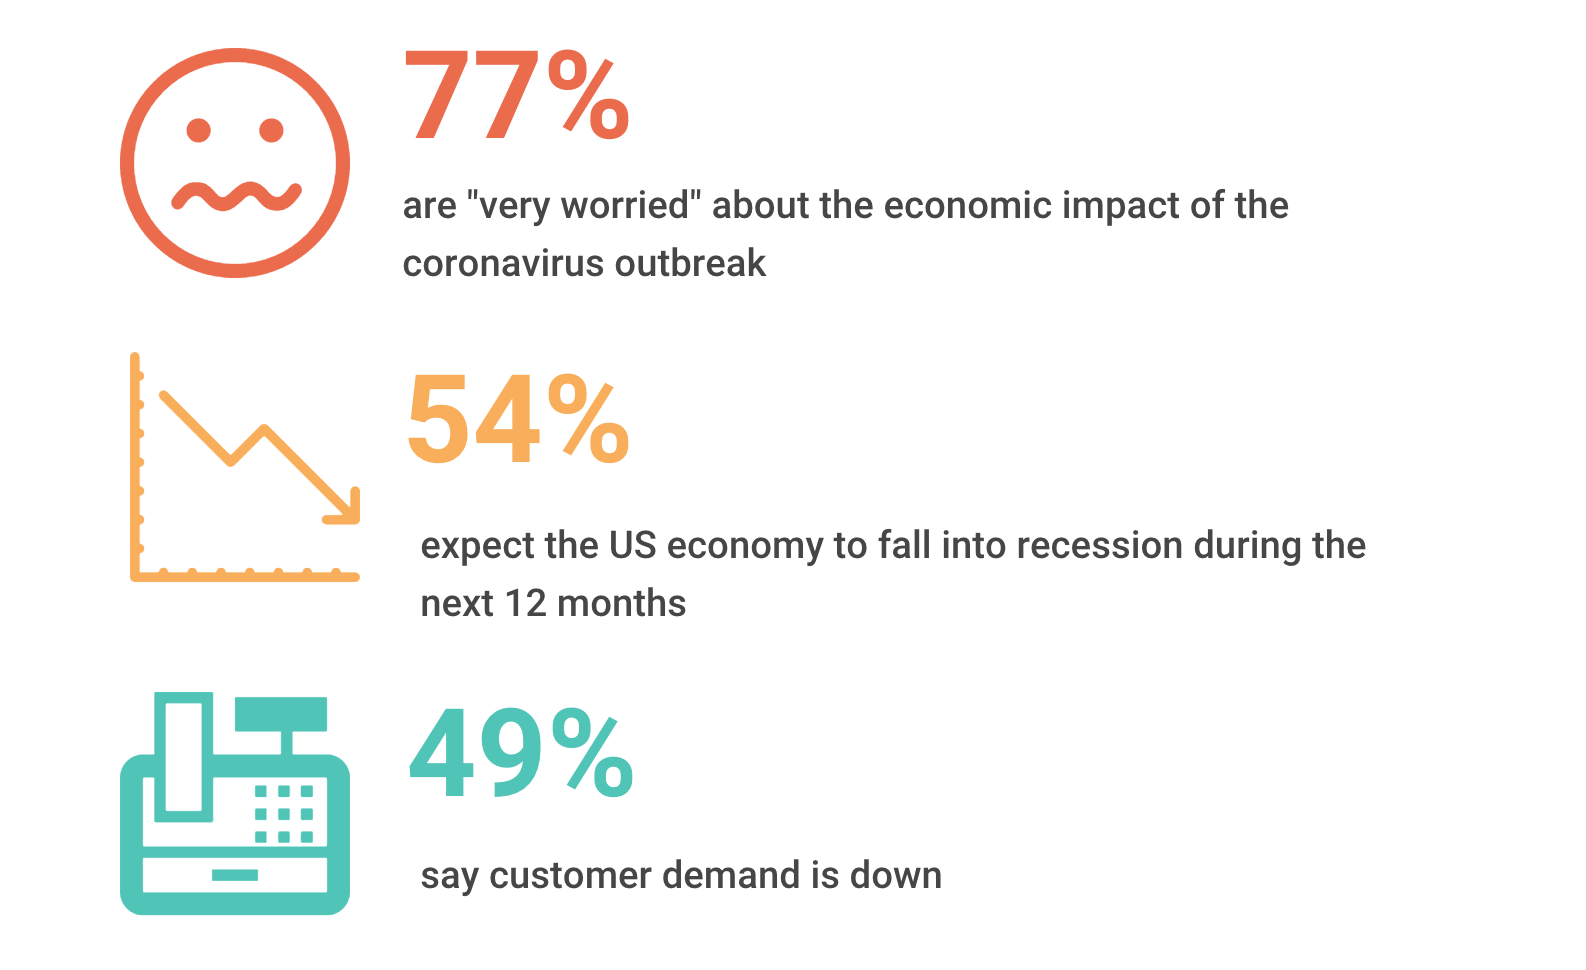 Source: National Small Business Association Impact Poll, March 2020